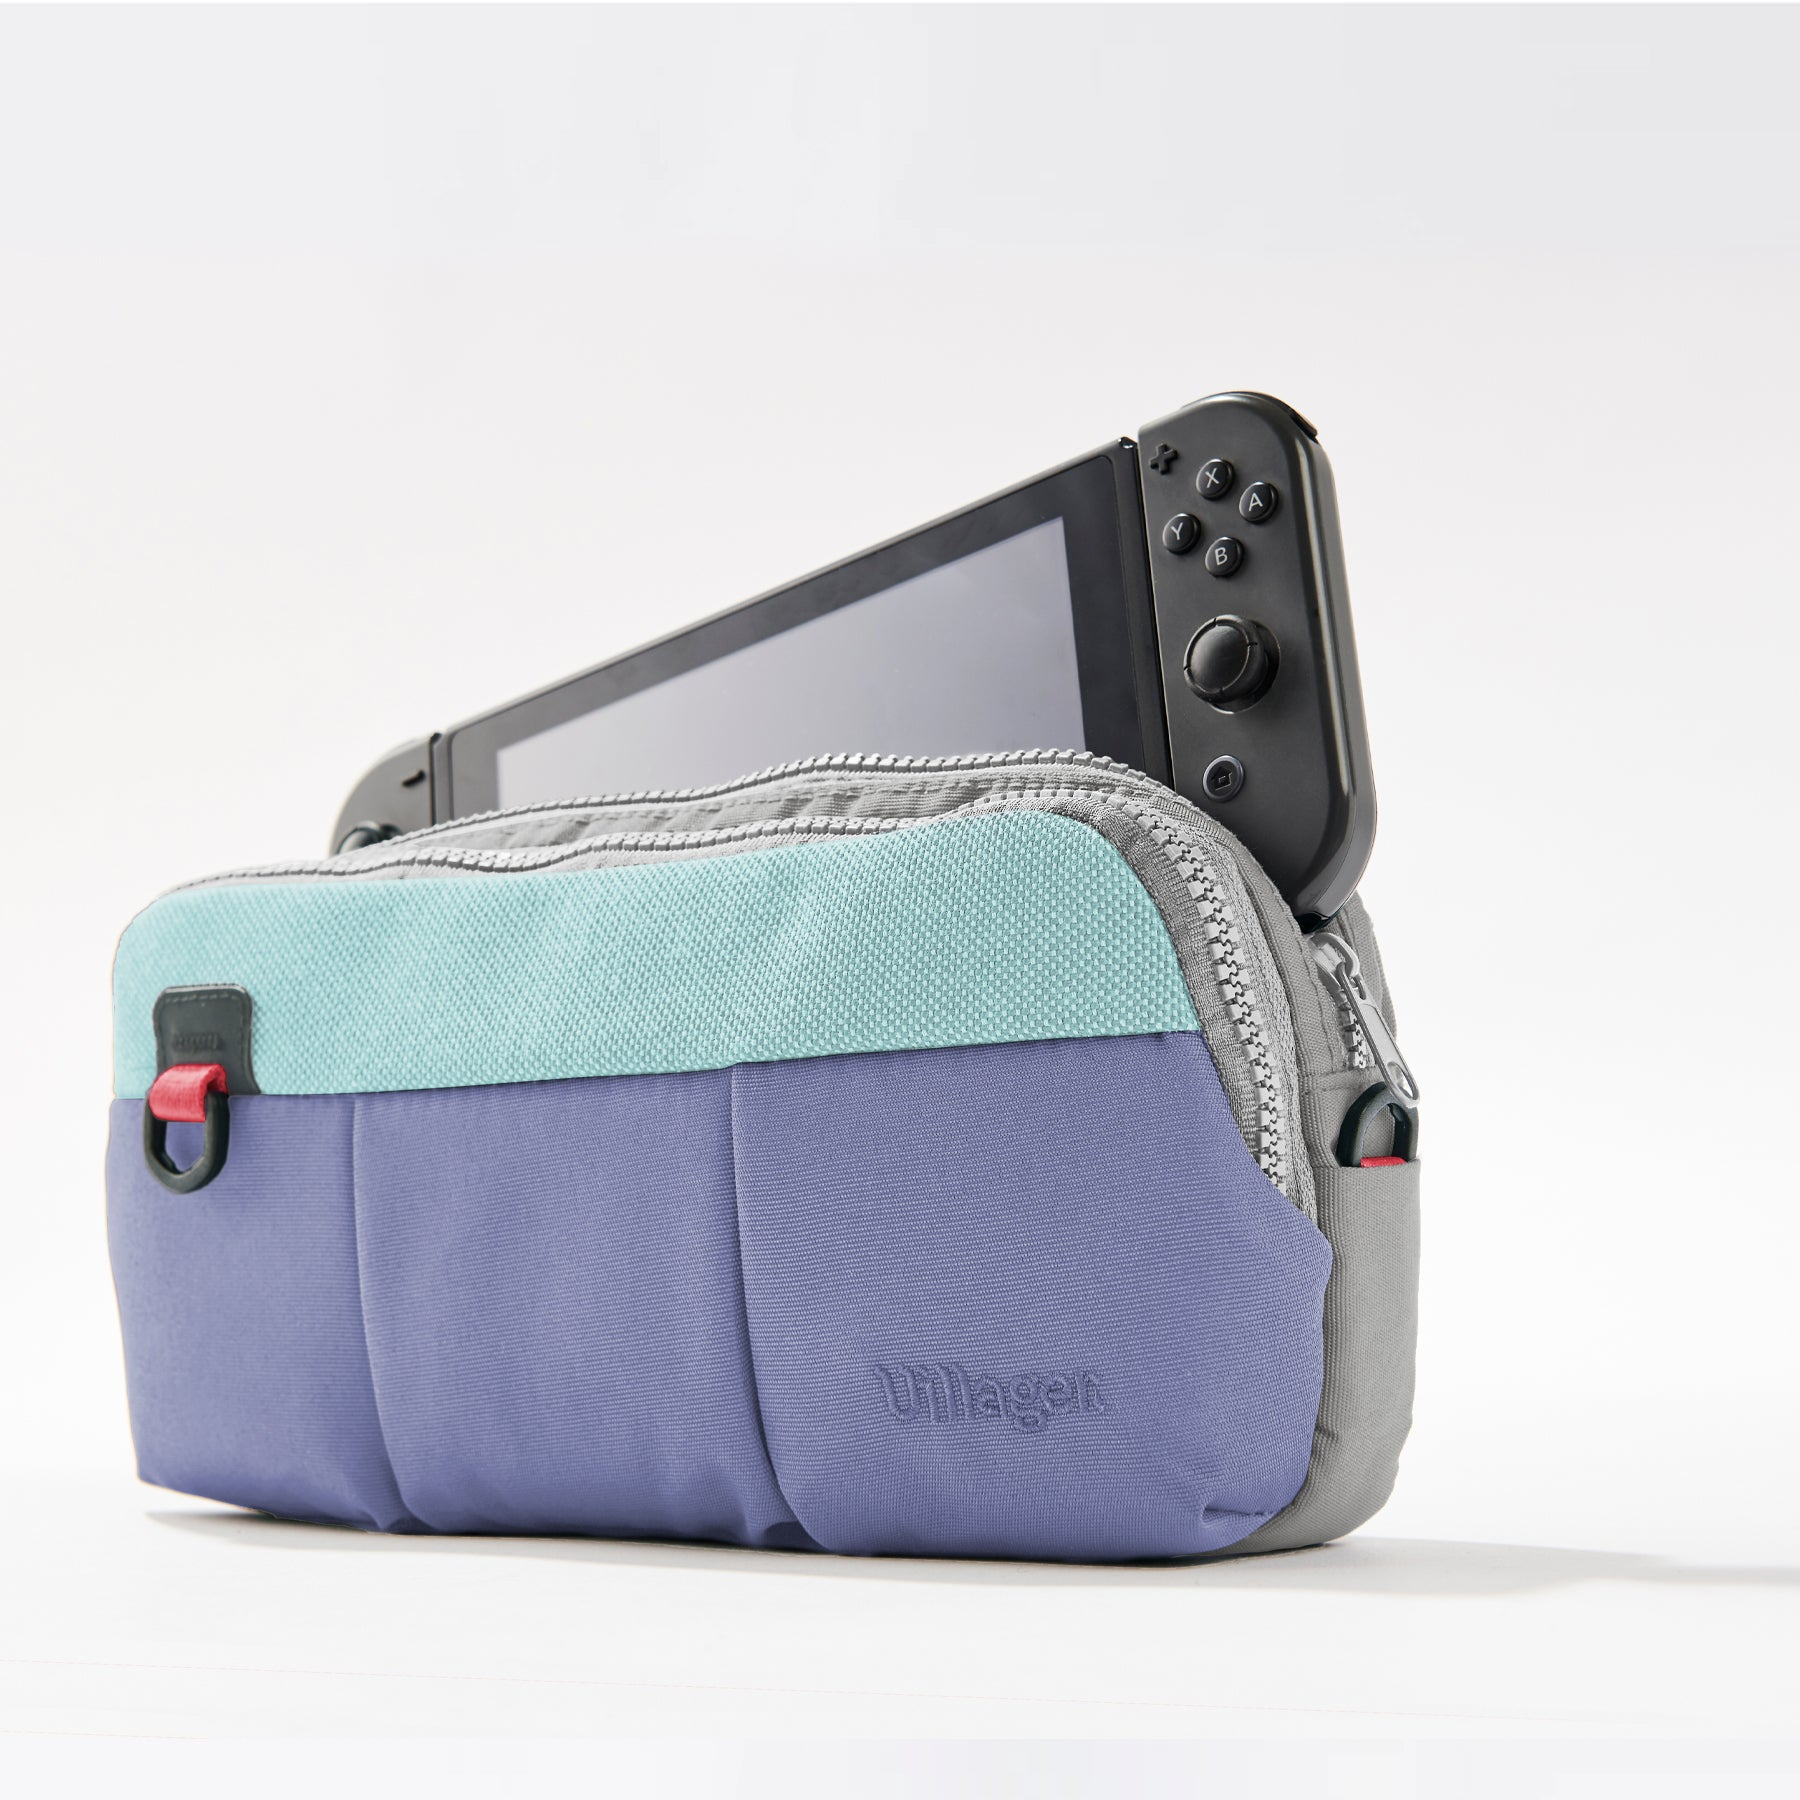 3-UP Nintendo Switch case - Dreamland